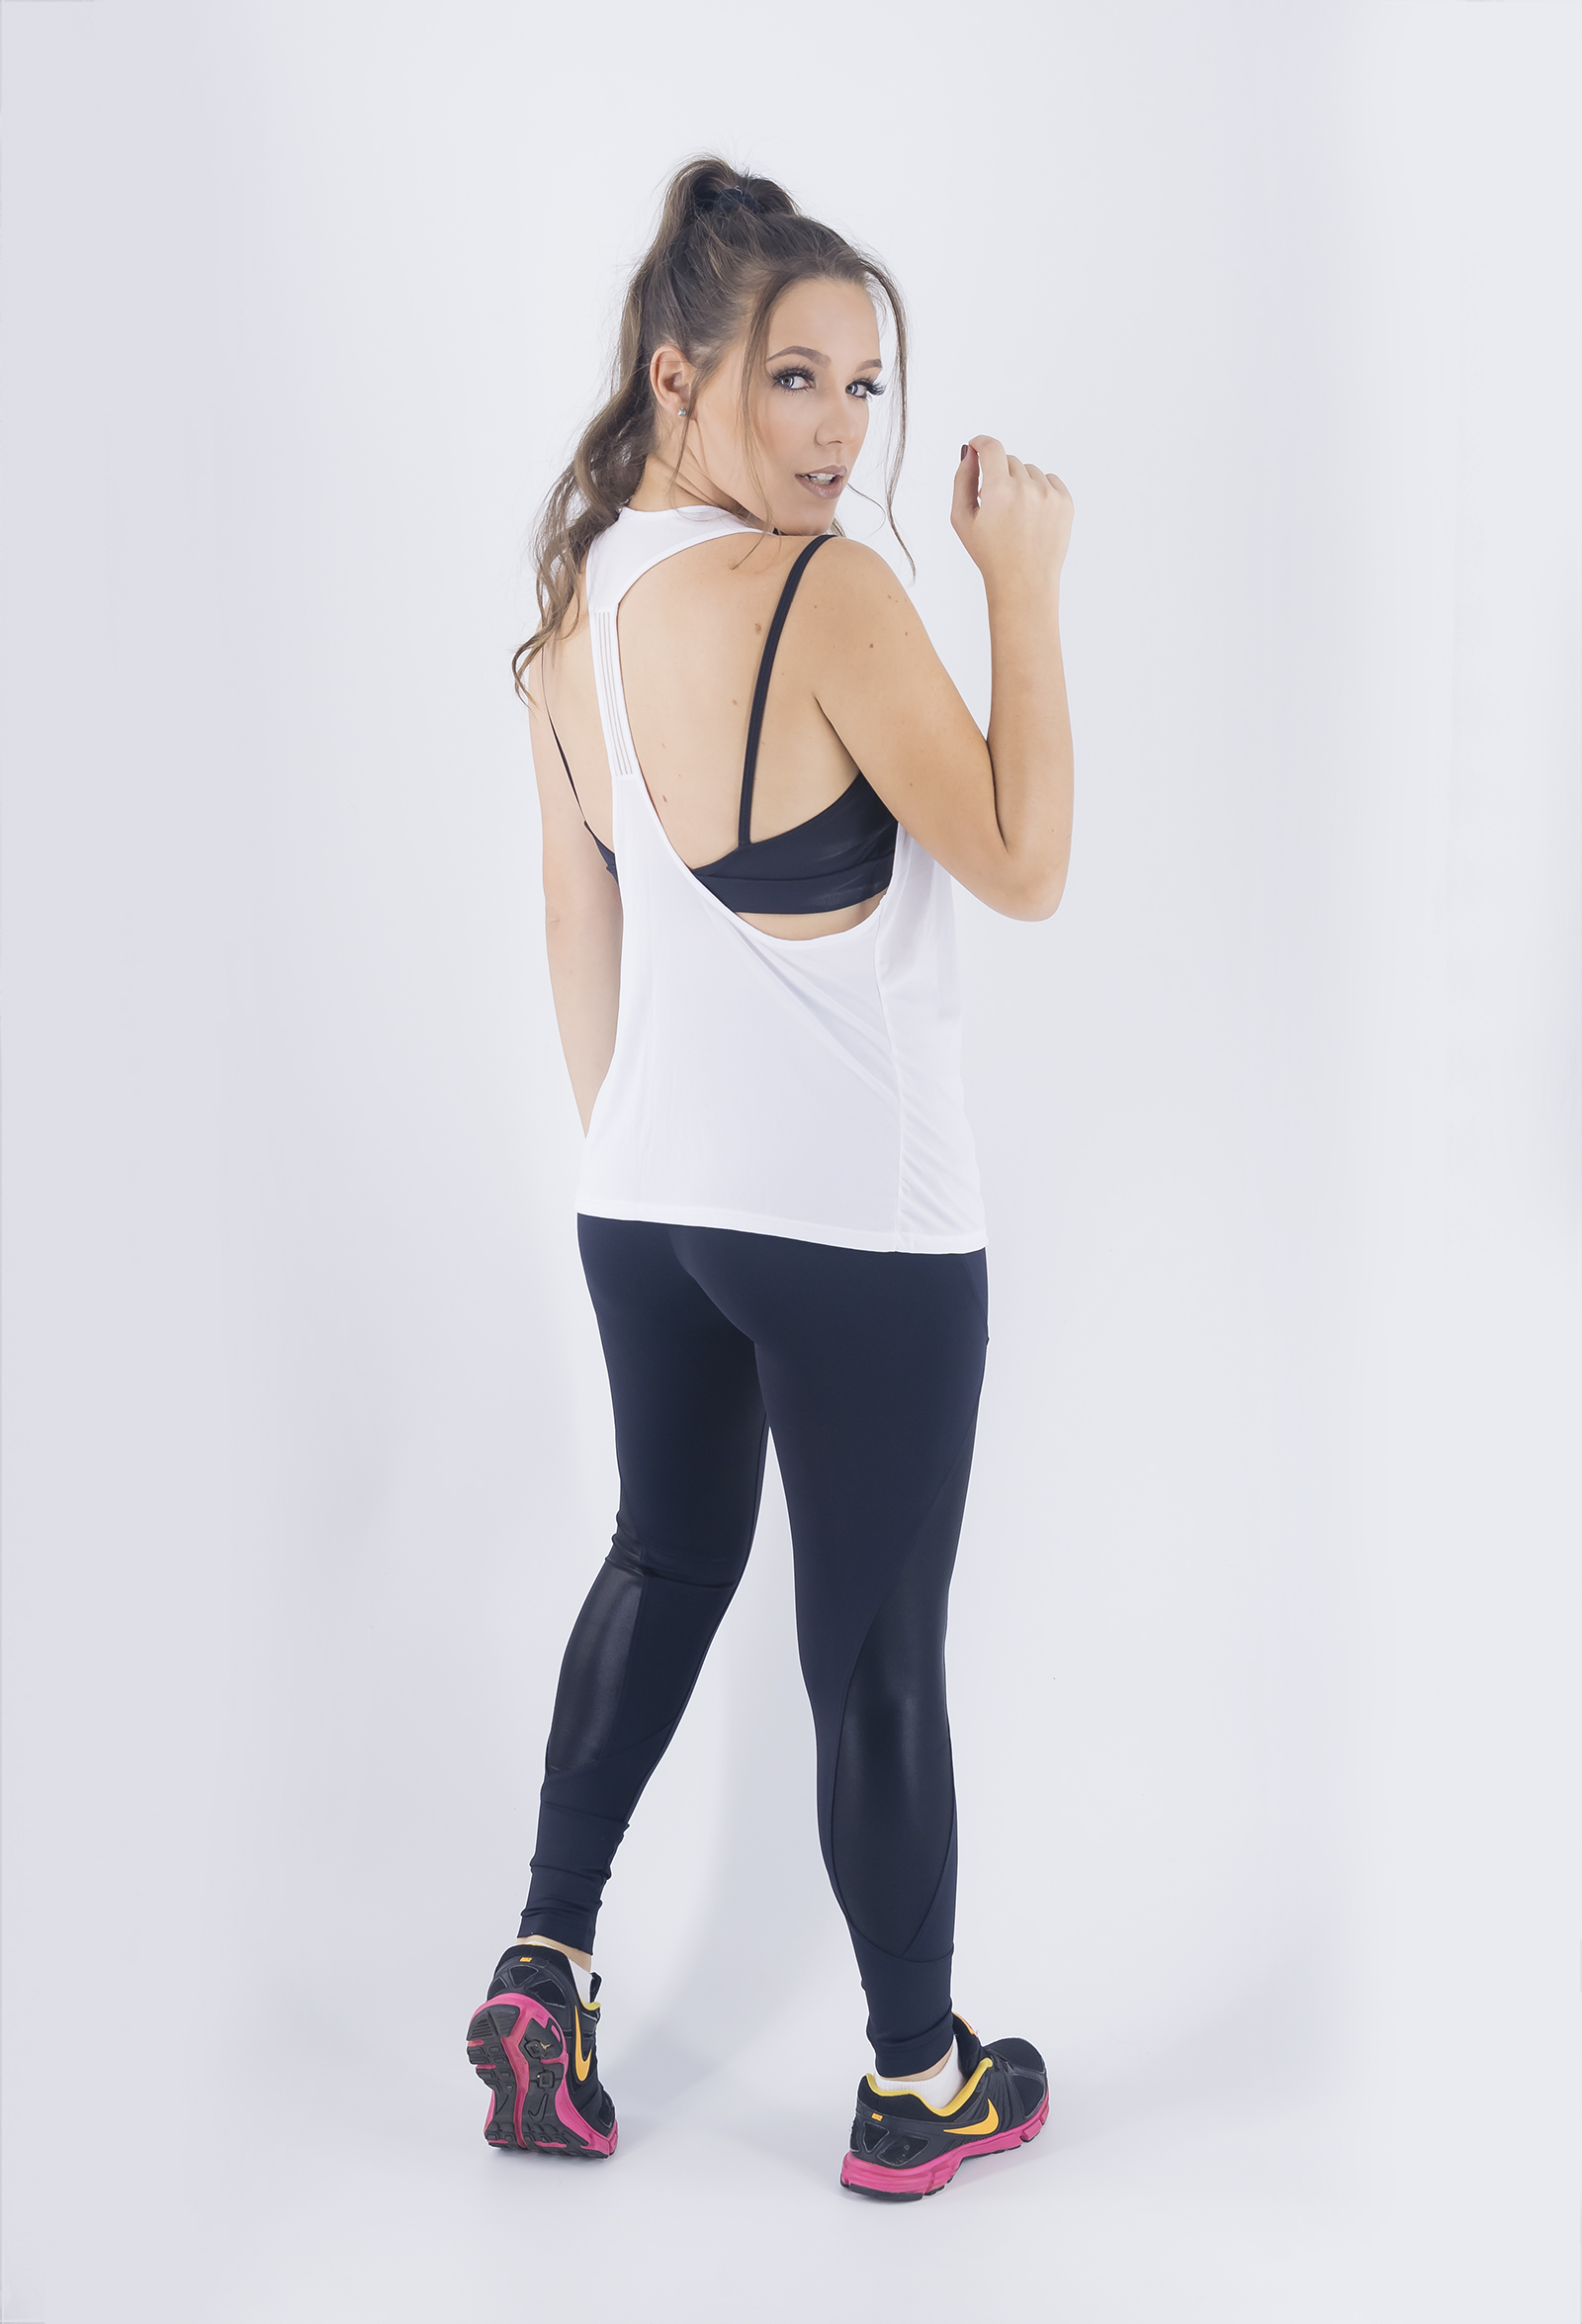 Regata Cava Fabulous Branca, Coleção Just For You - NKT Fitwear Moda Fitness